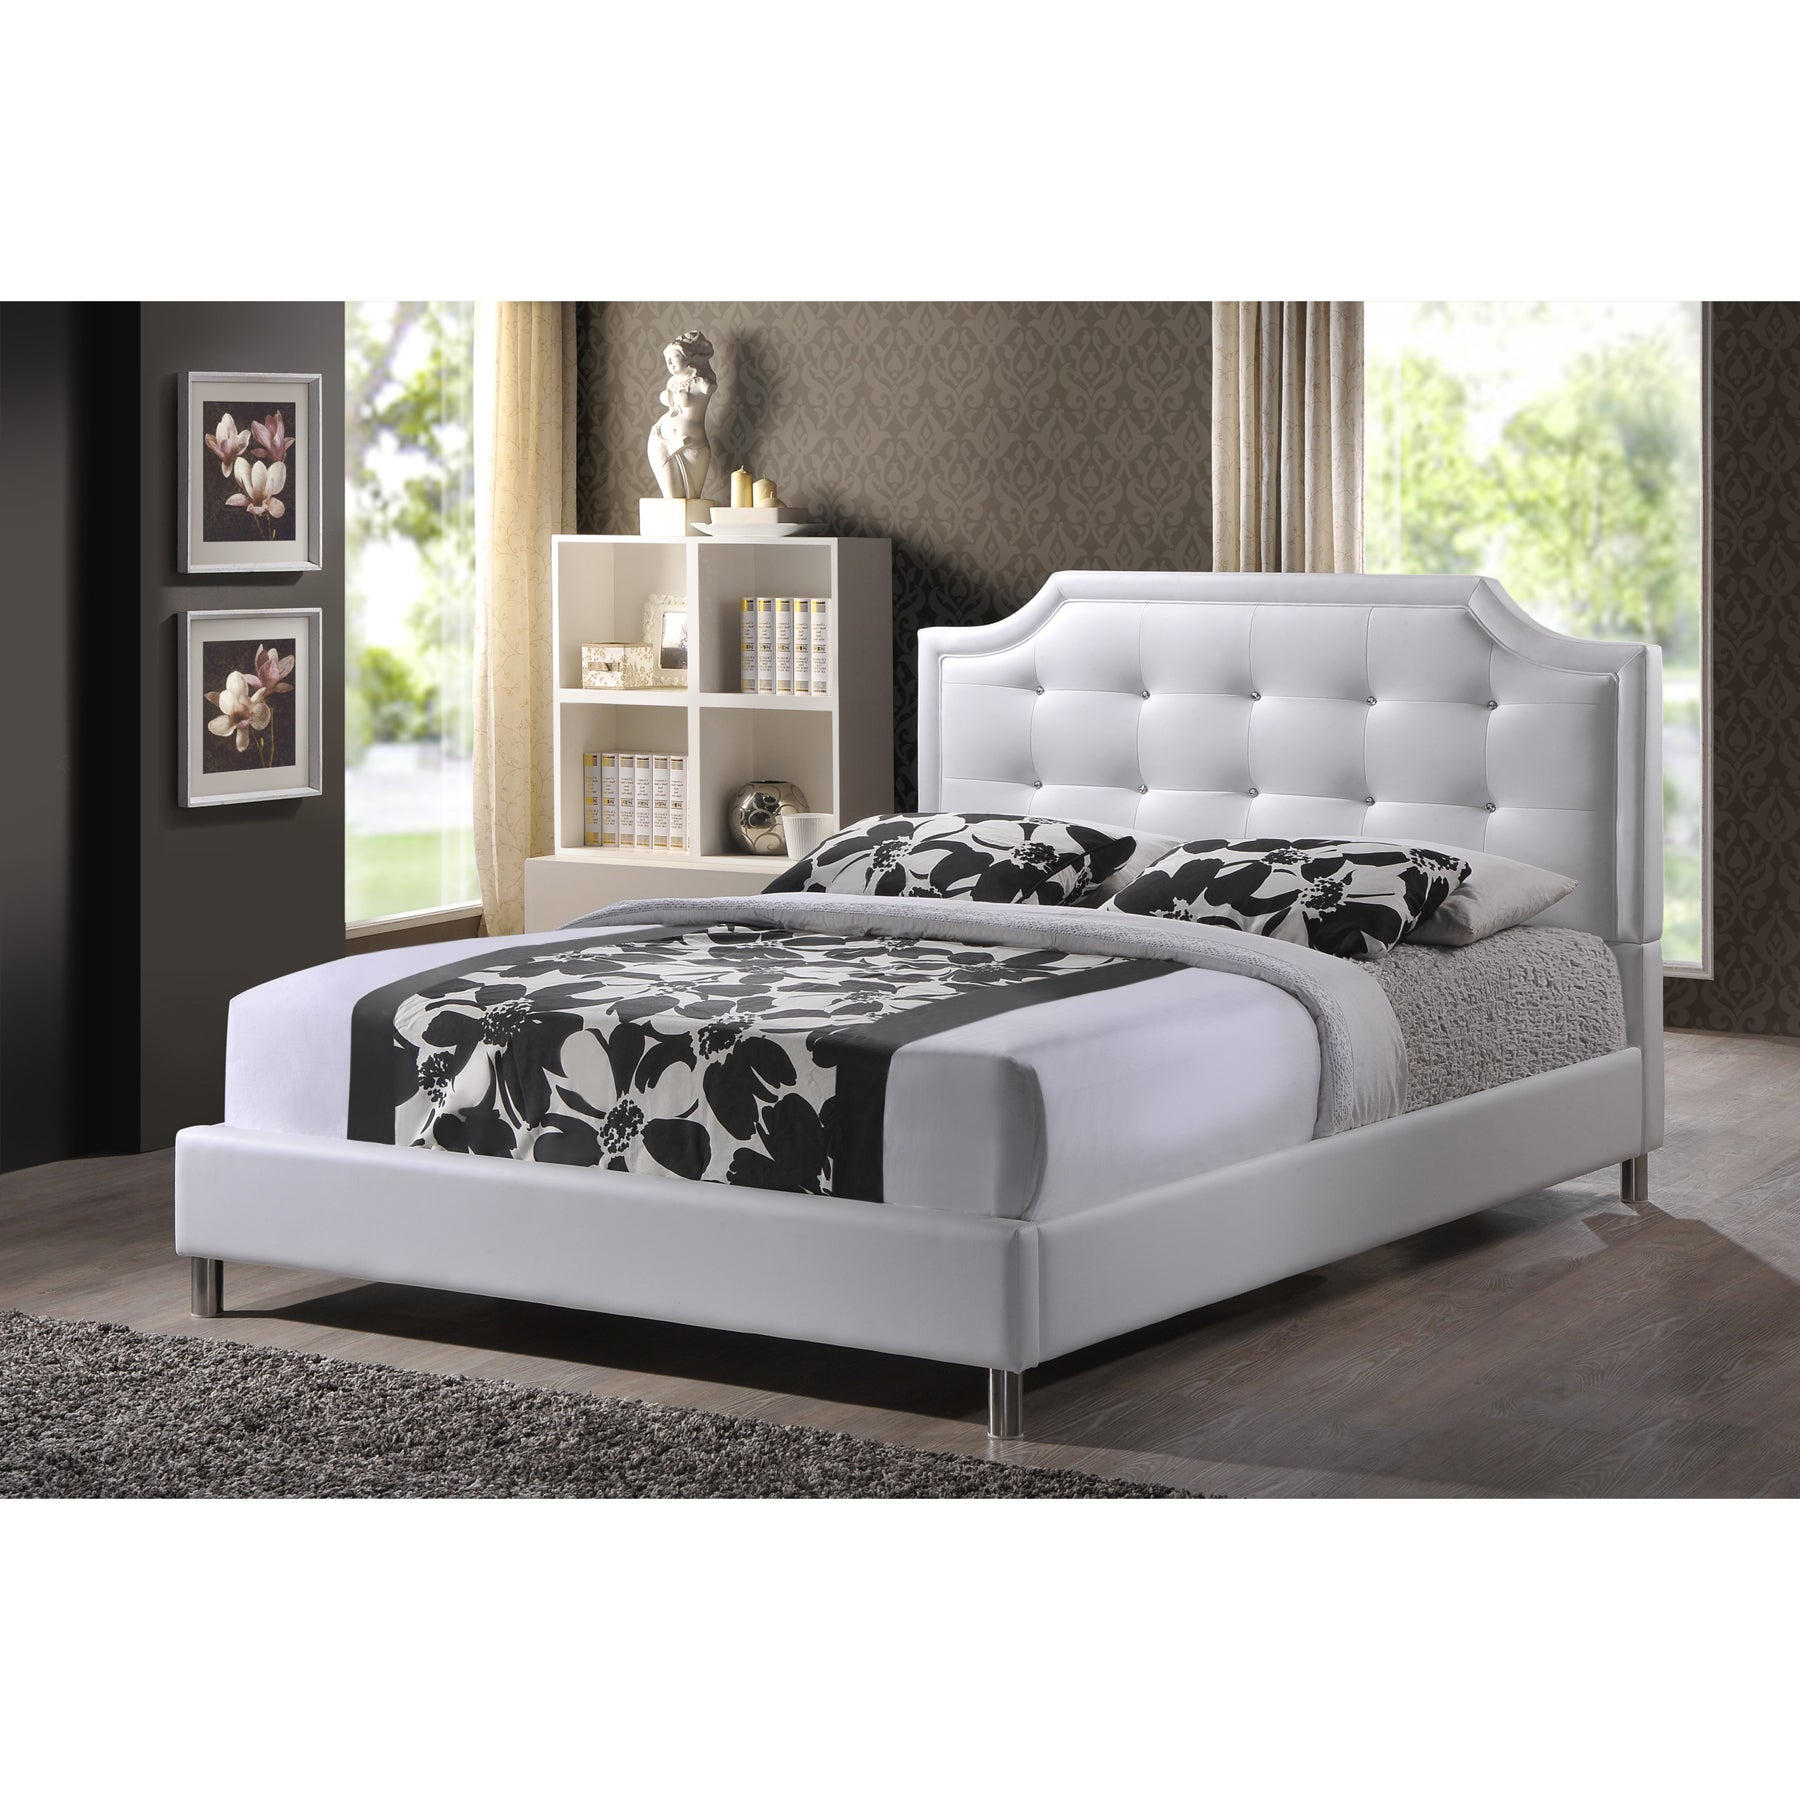 King Size Bed Frame Faux Leather Platform Upholstered Headboard